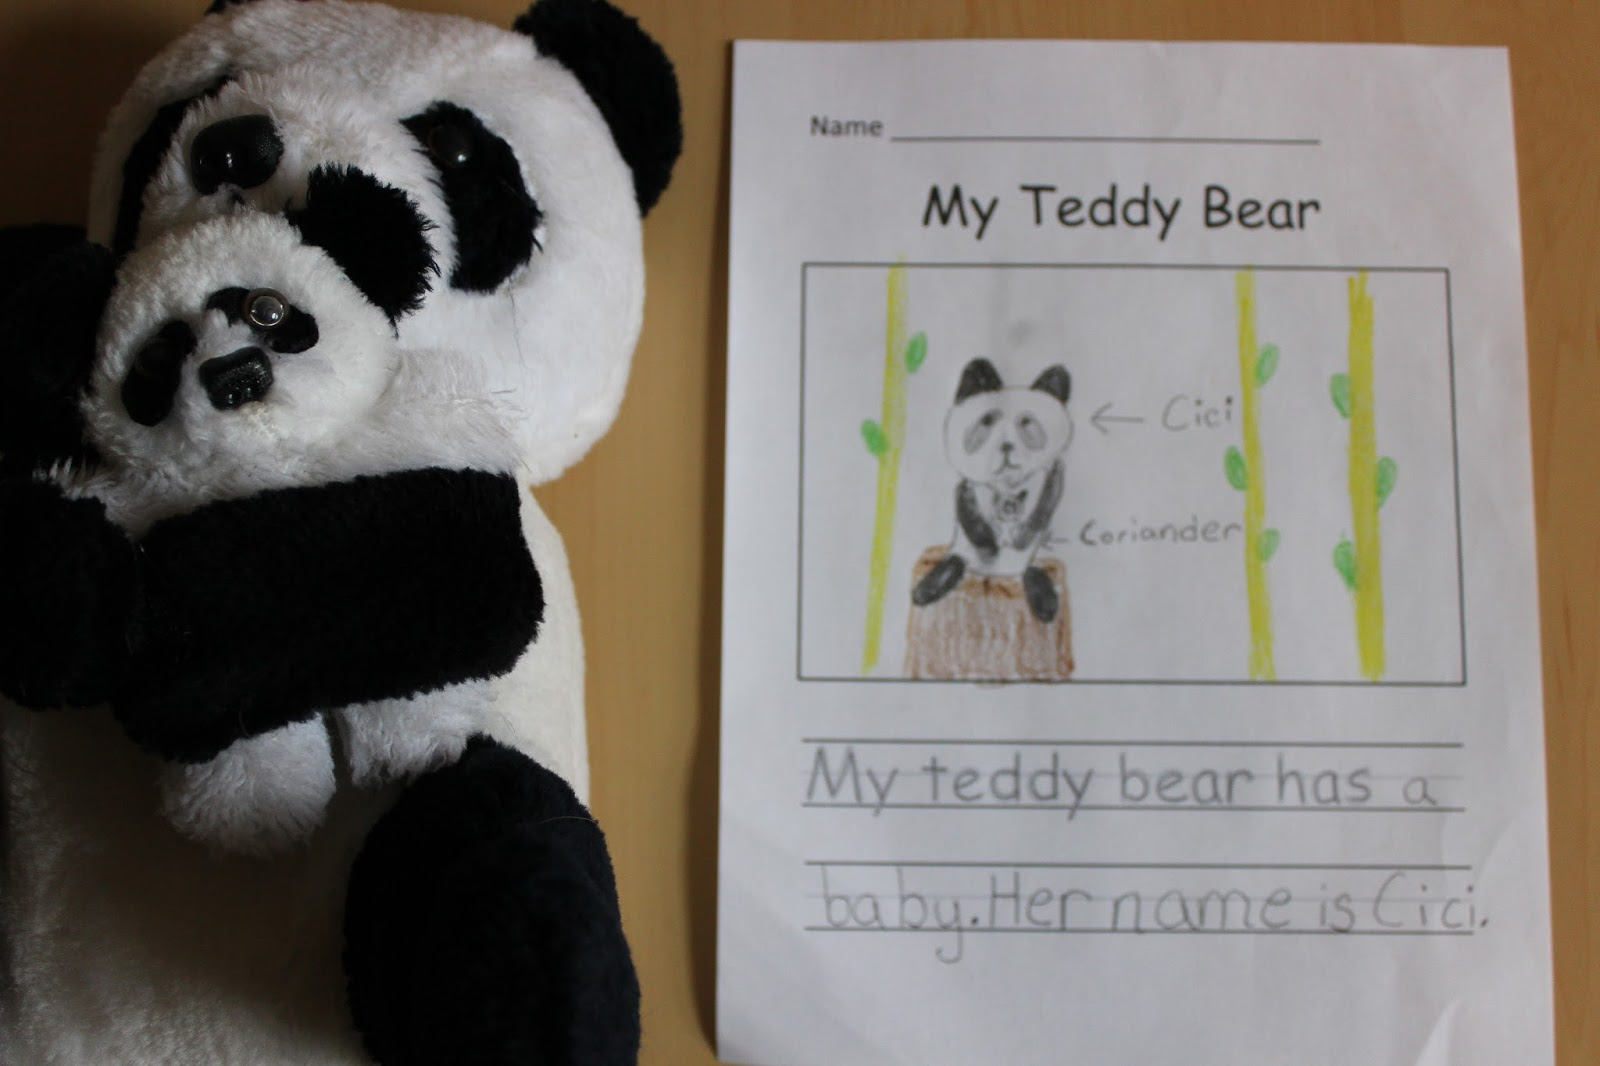 teddy bear essay Unlike most editing & proofreading services, we edit for everything: grammar, spelling, punctuation, idea flow, sentence structure, & more get started now.